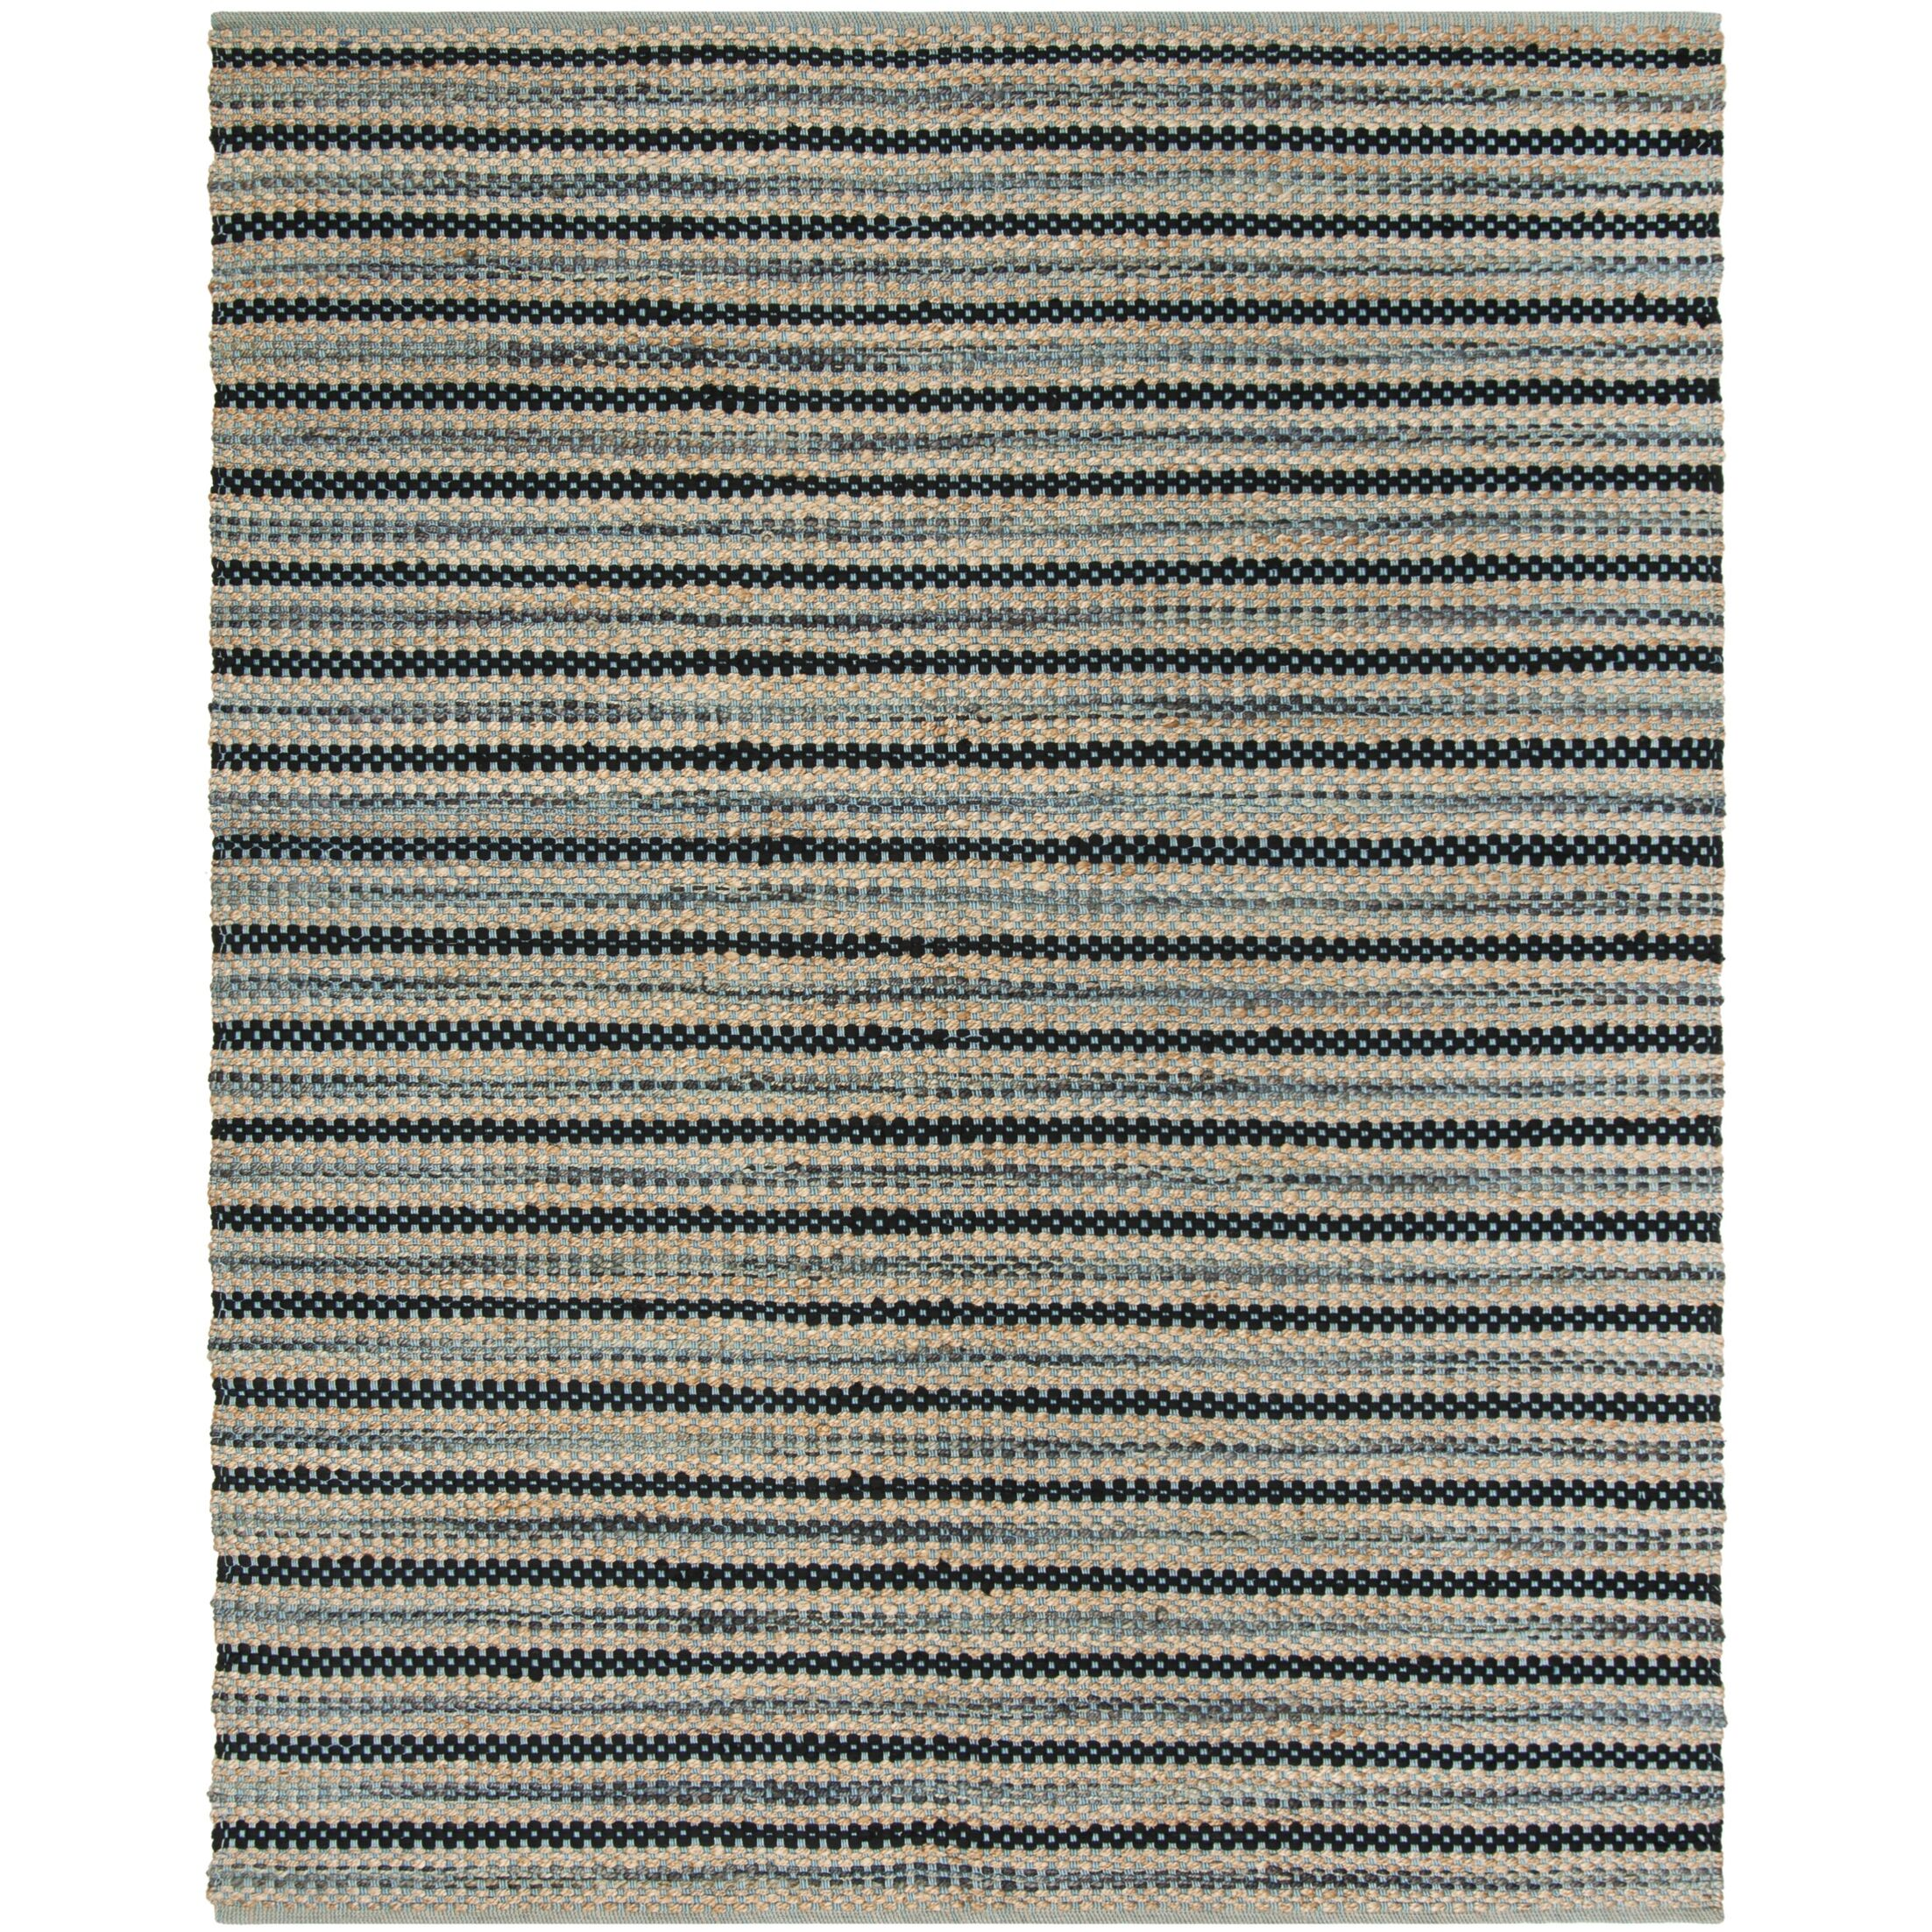 Abhay Hand Woven Blue/Black Area Rug Rug Size: Rectangle 8' x 10'